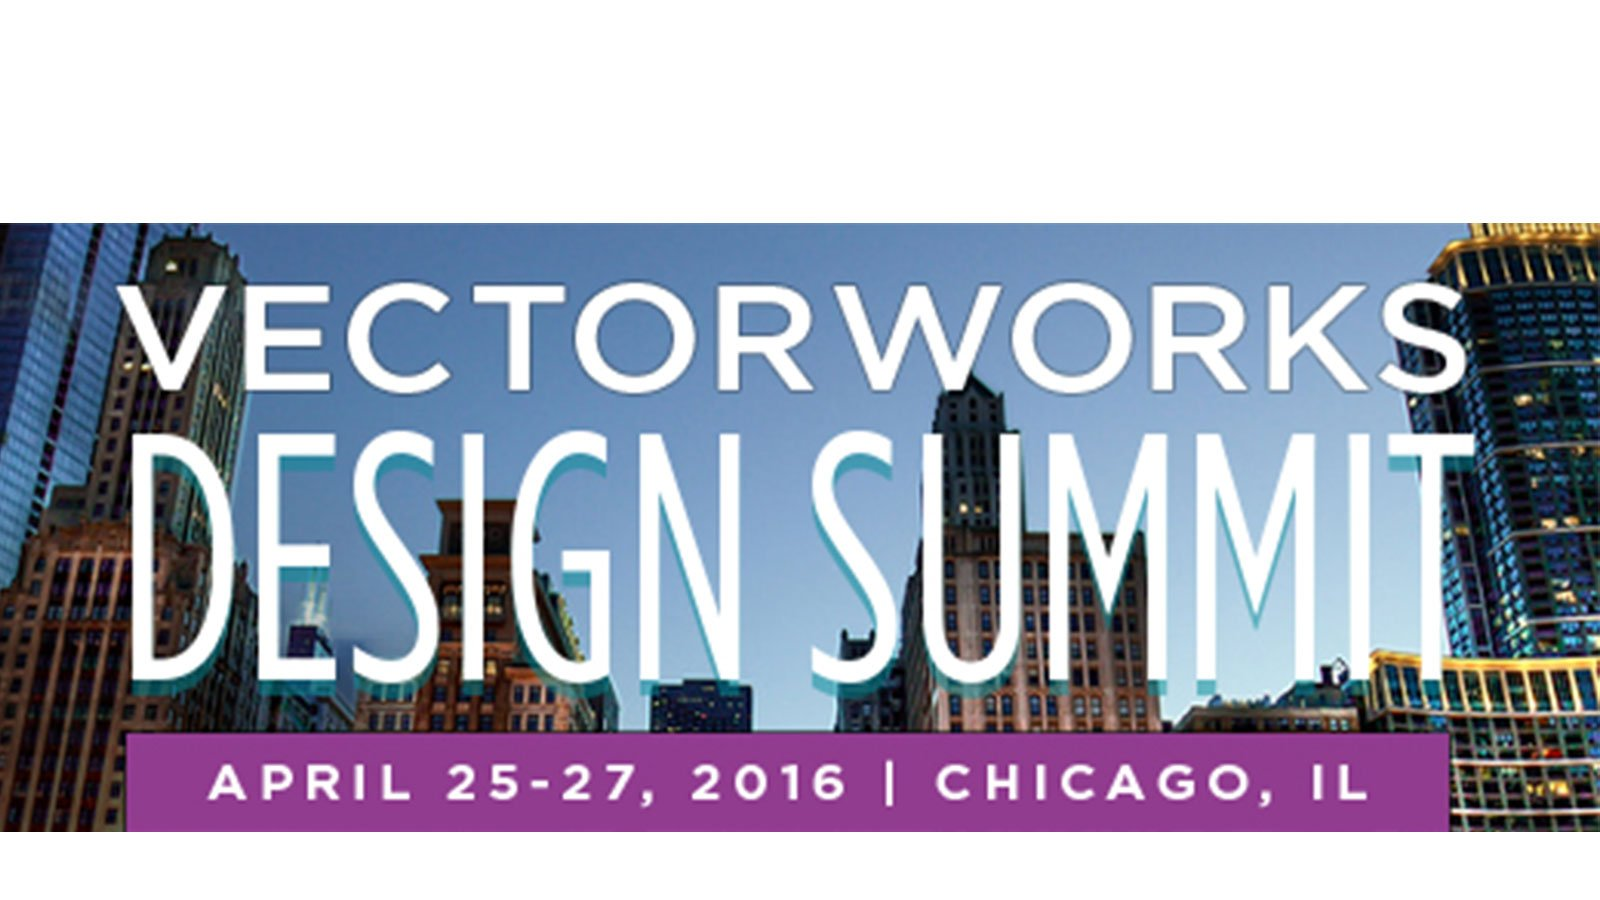 Asite are Headline sponsors of Vectorworks Design Summit, Chicago, USA.